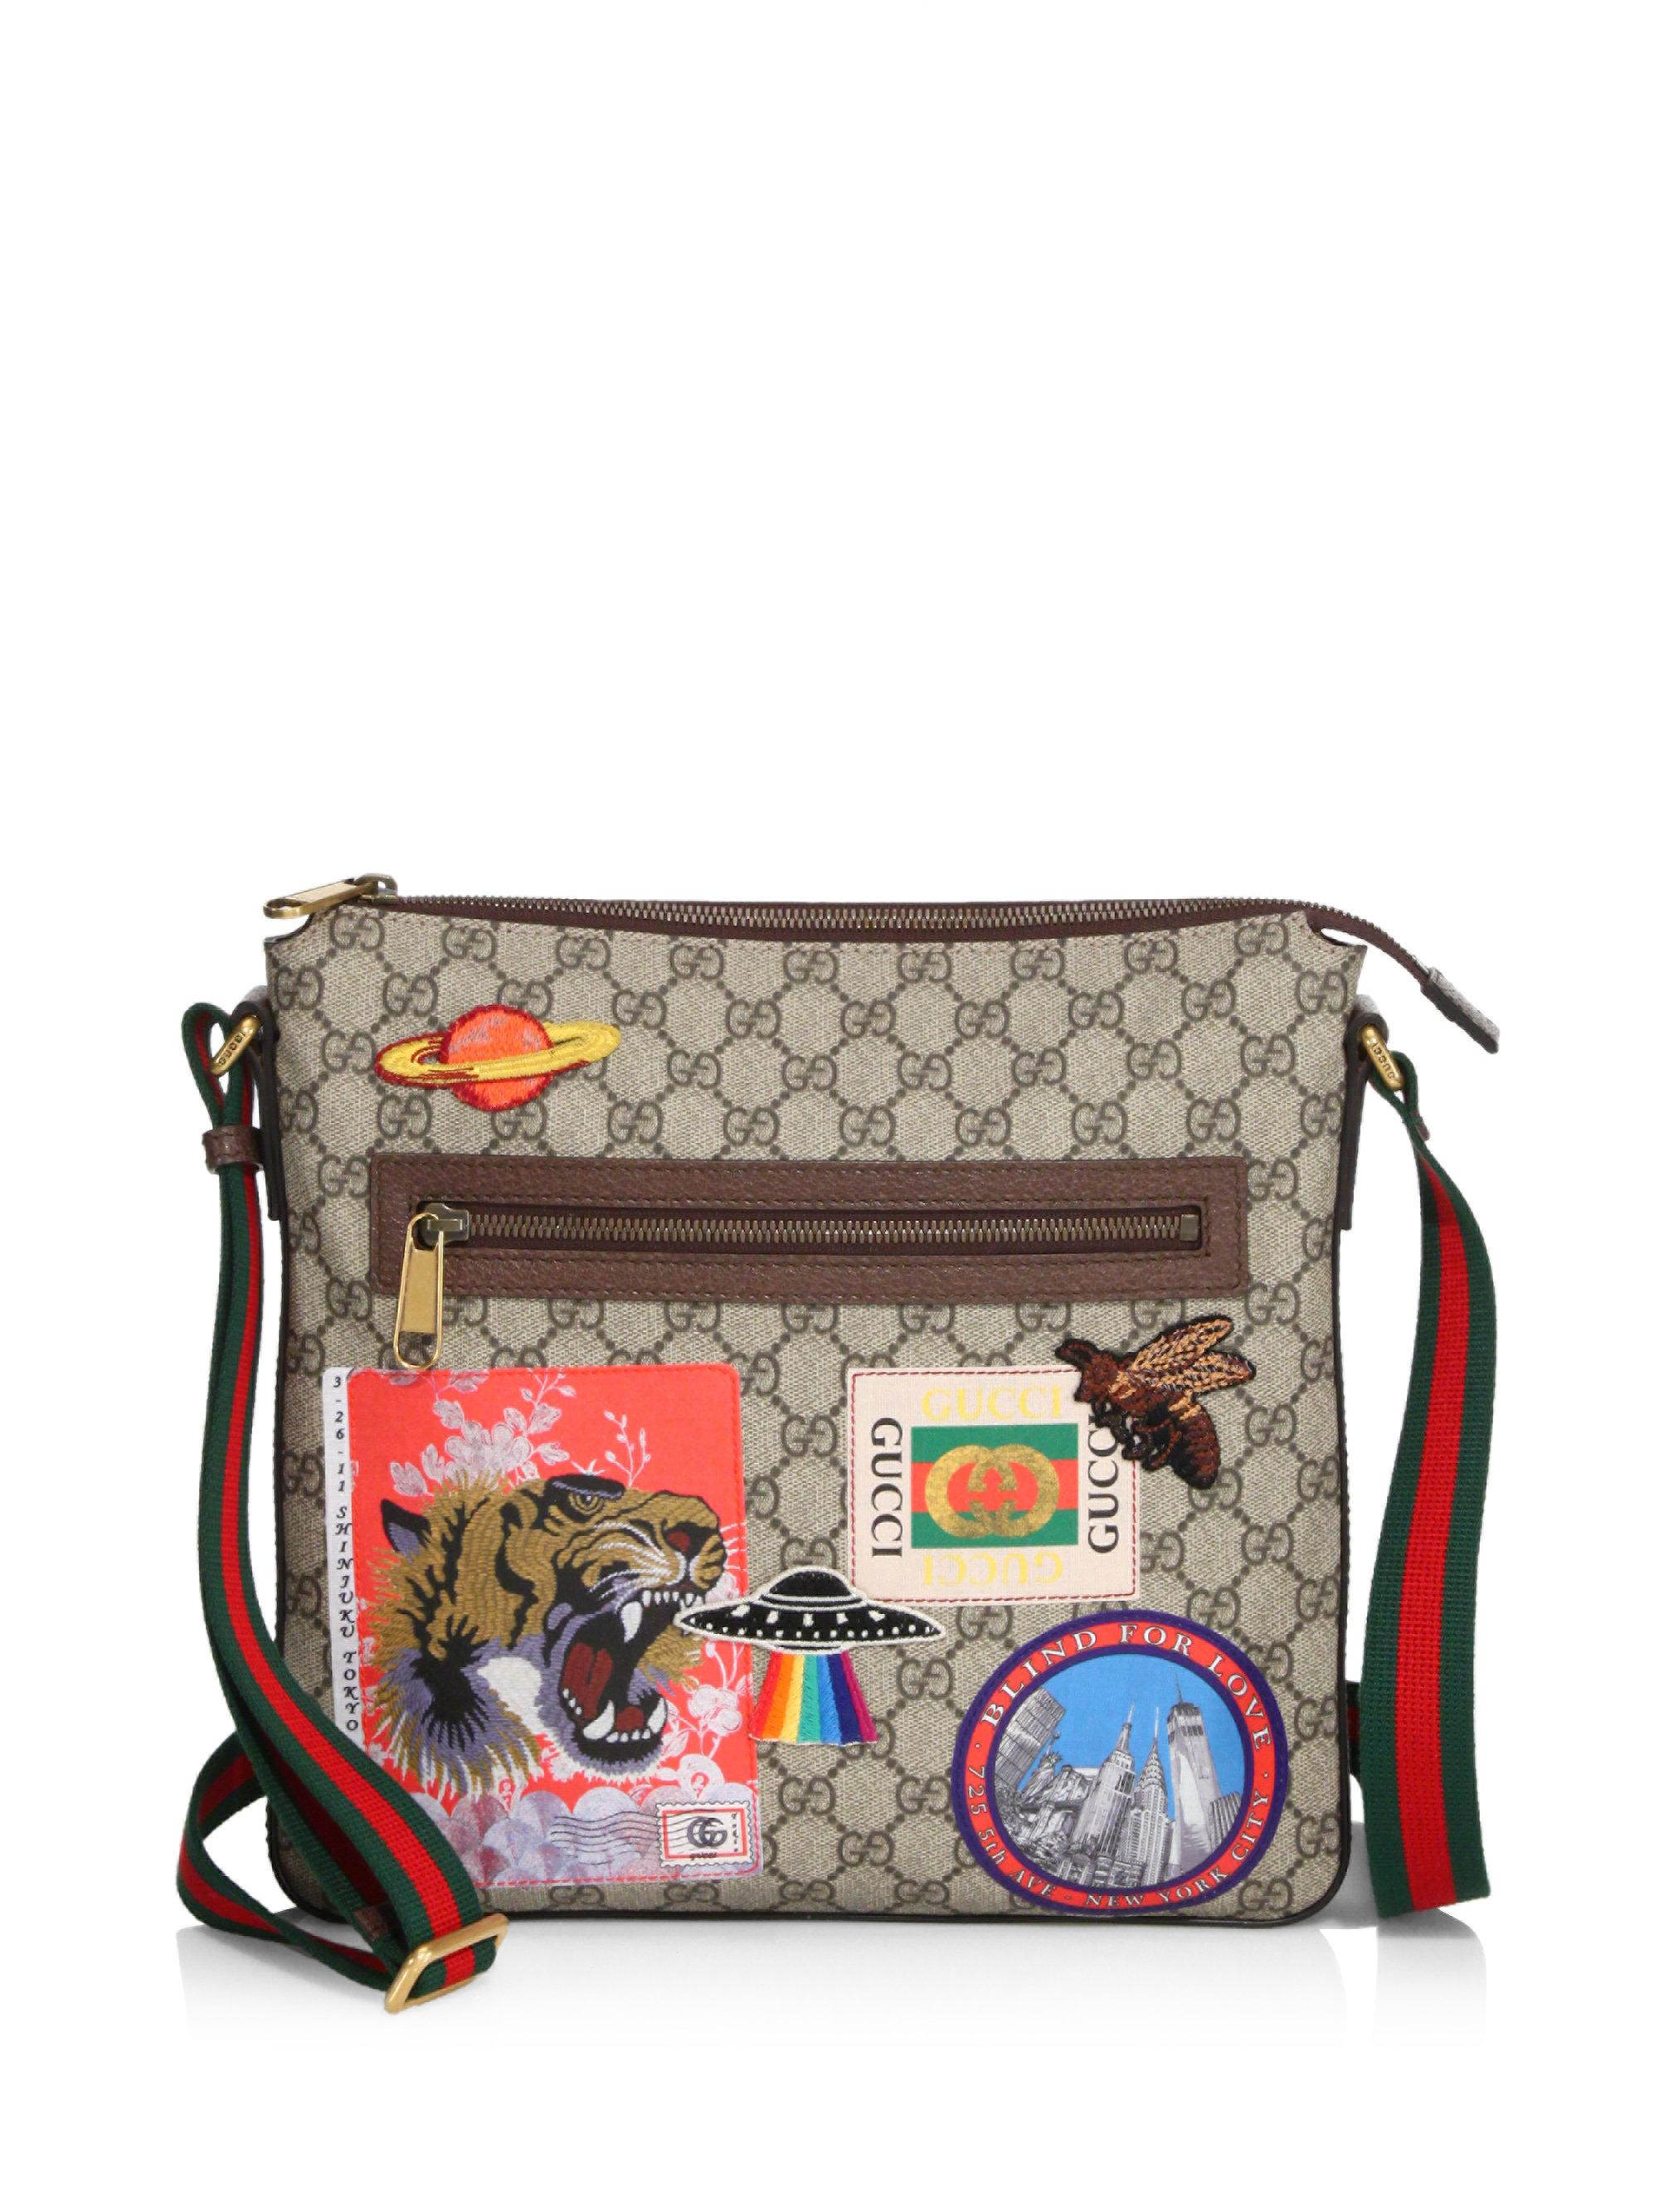 1ac4c5fab74a59 Gucci Messenger Bags For Men Patch | Stanford Center for Opportunity ...